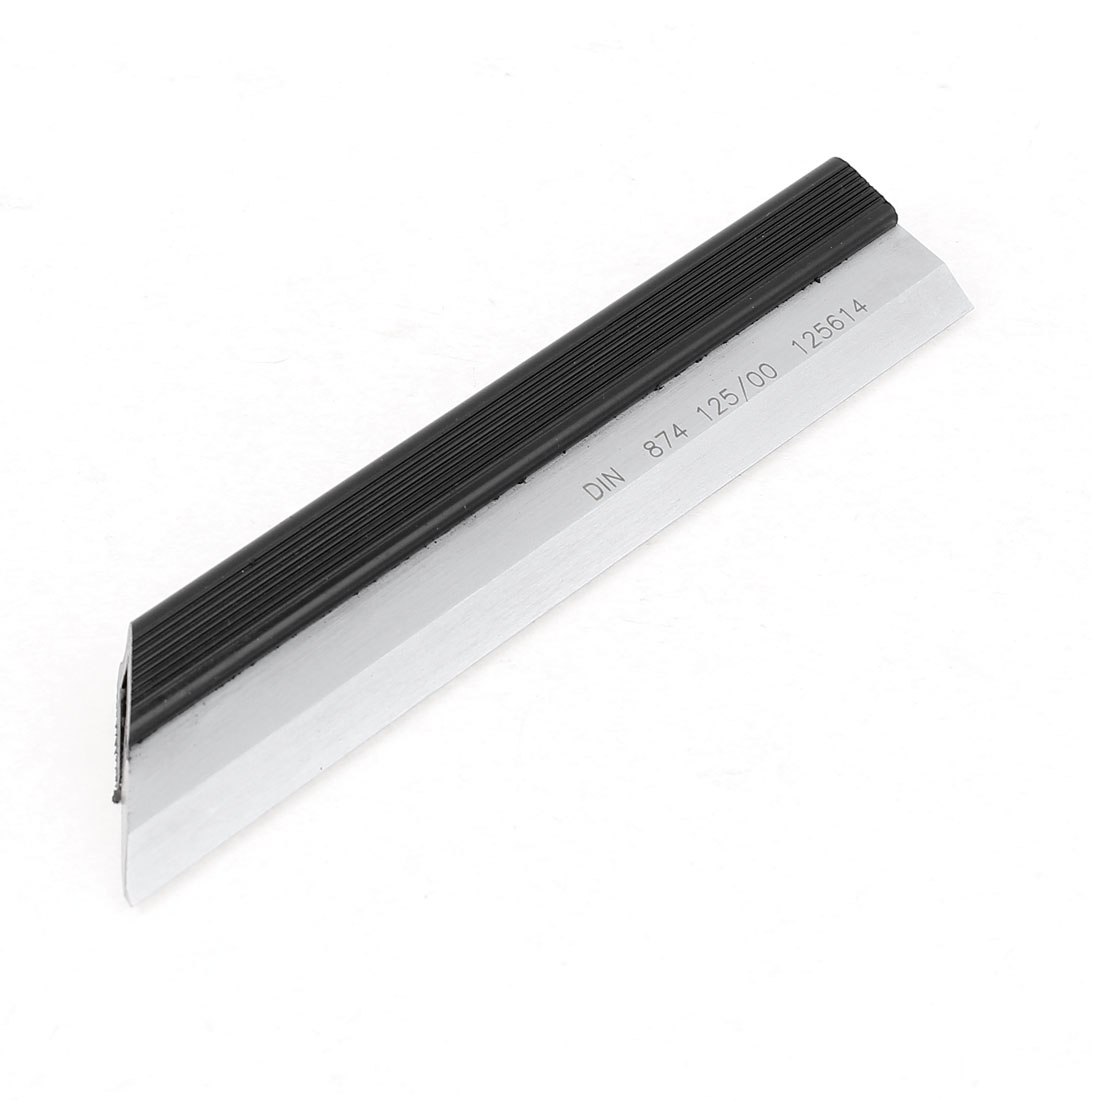 Silver Tone 125mm Cuttered Length Straight Edge Ruler Measure Tool